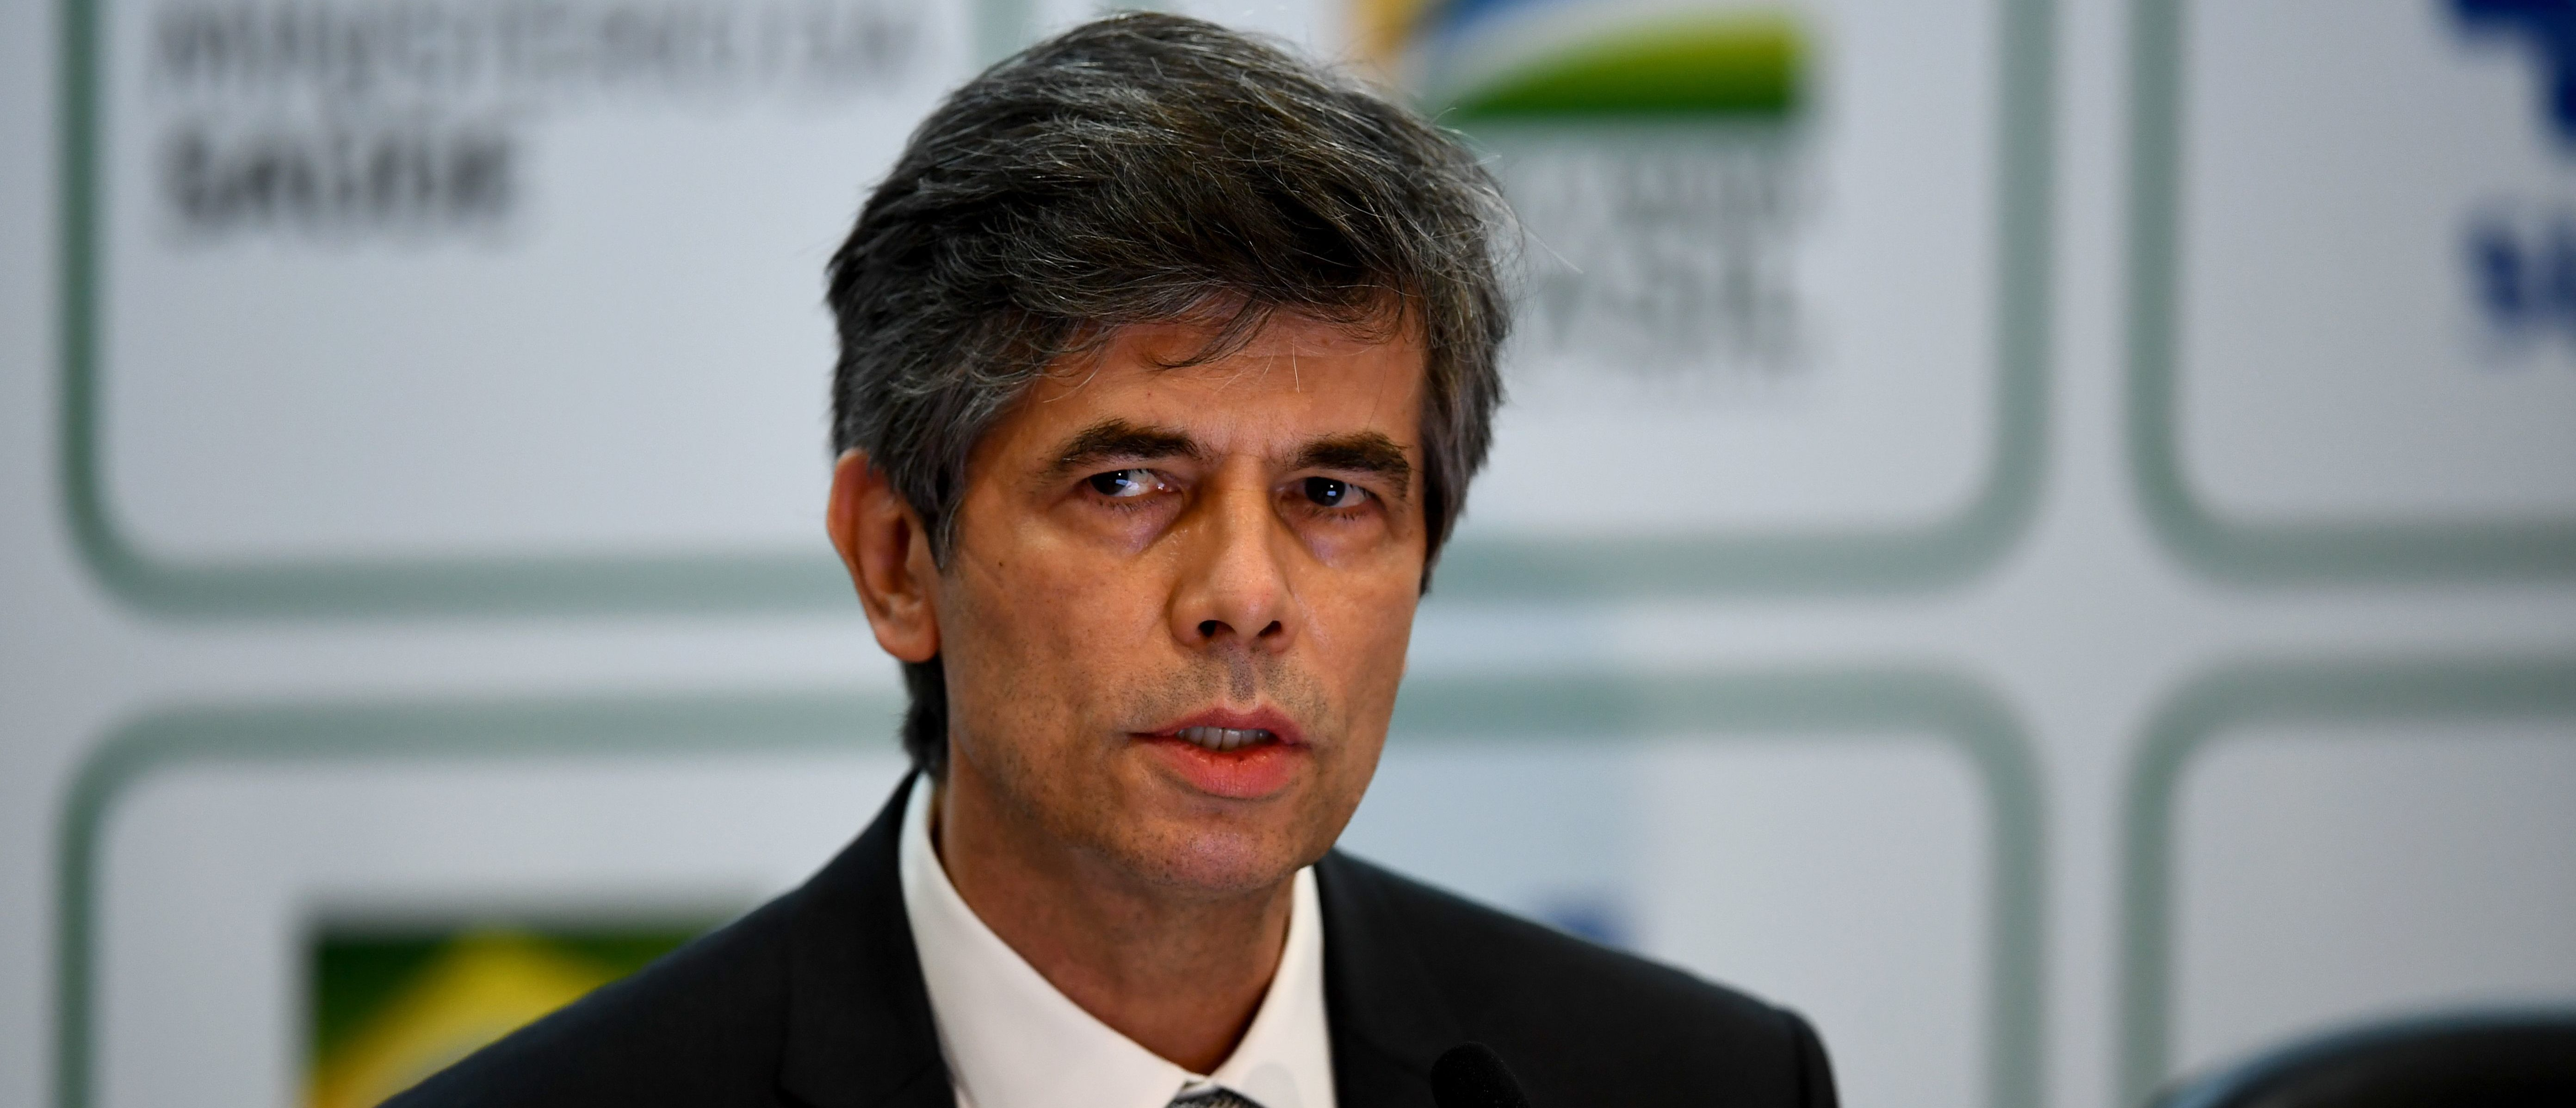 Brazil's outgoing Health Minister Nelson Teich speaks during a press conference in Brasilia, Brazil, on May 15, 2020. - Teich resigned Friday over what a ministry official said was